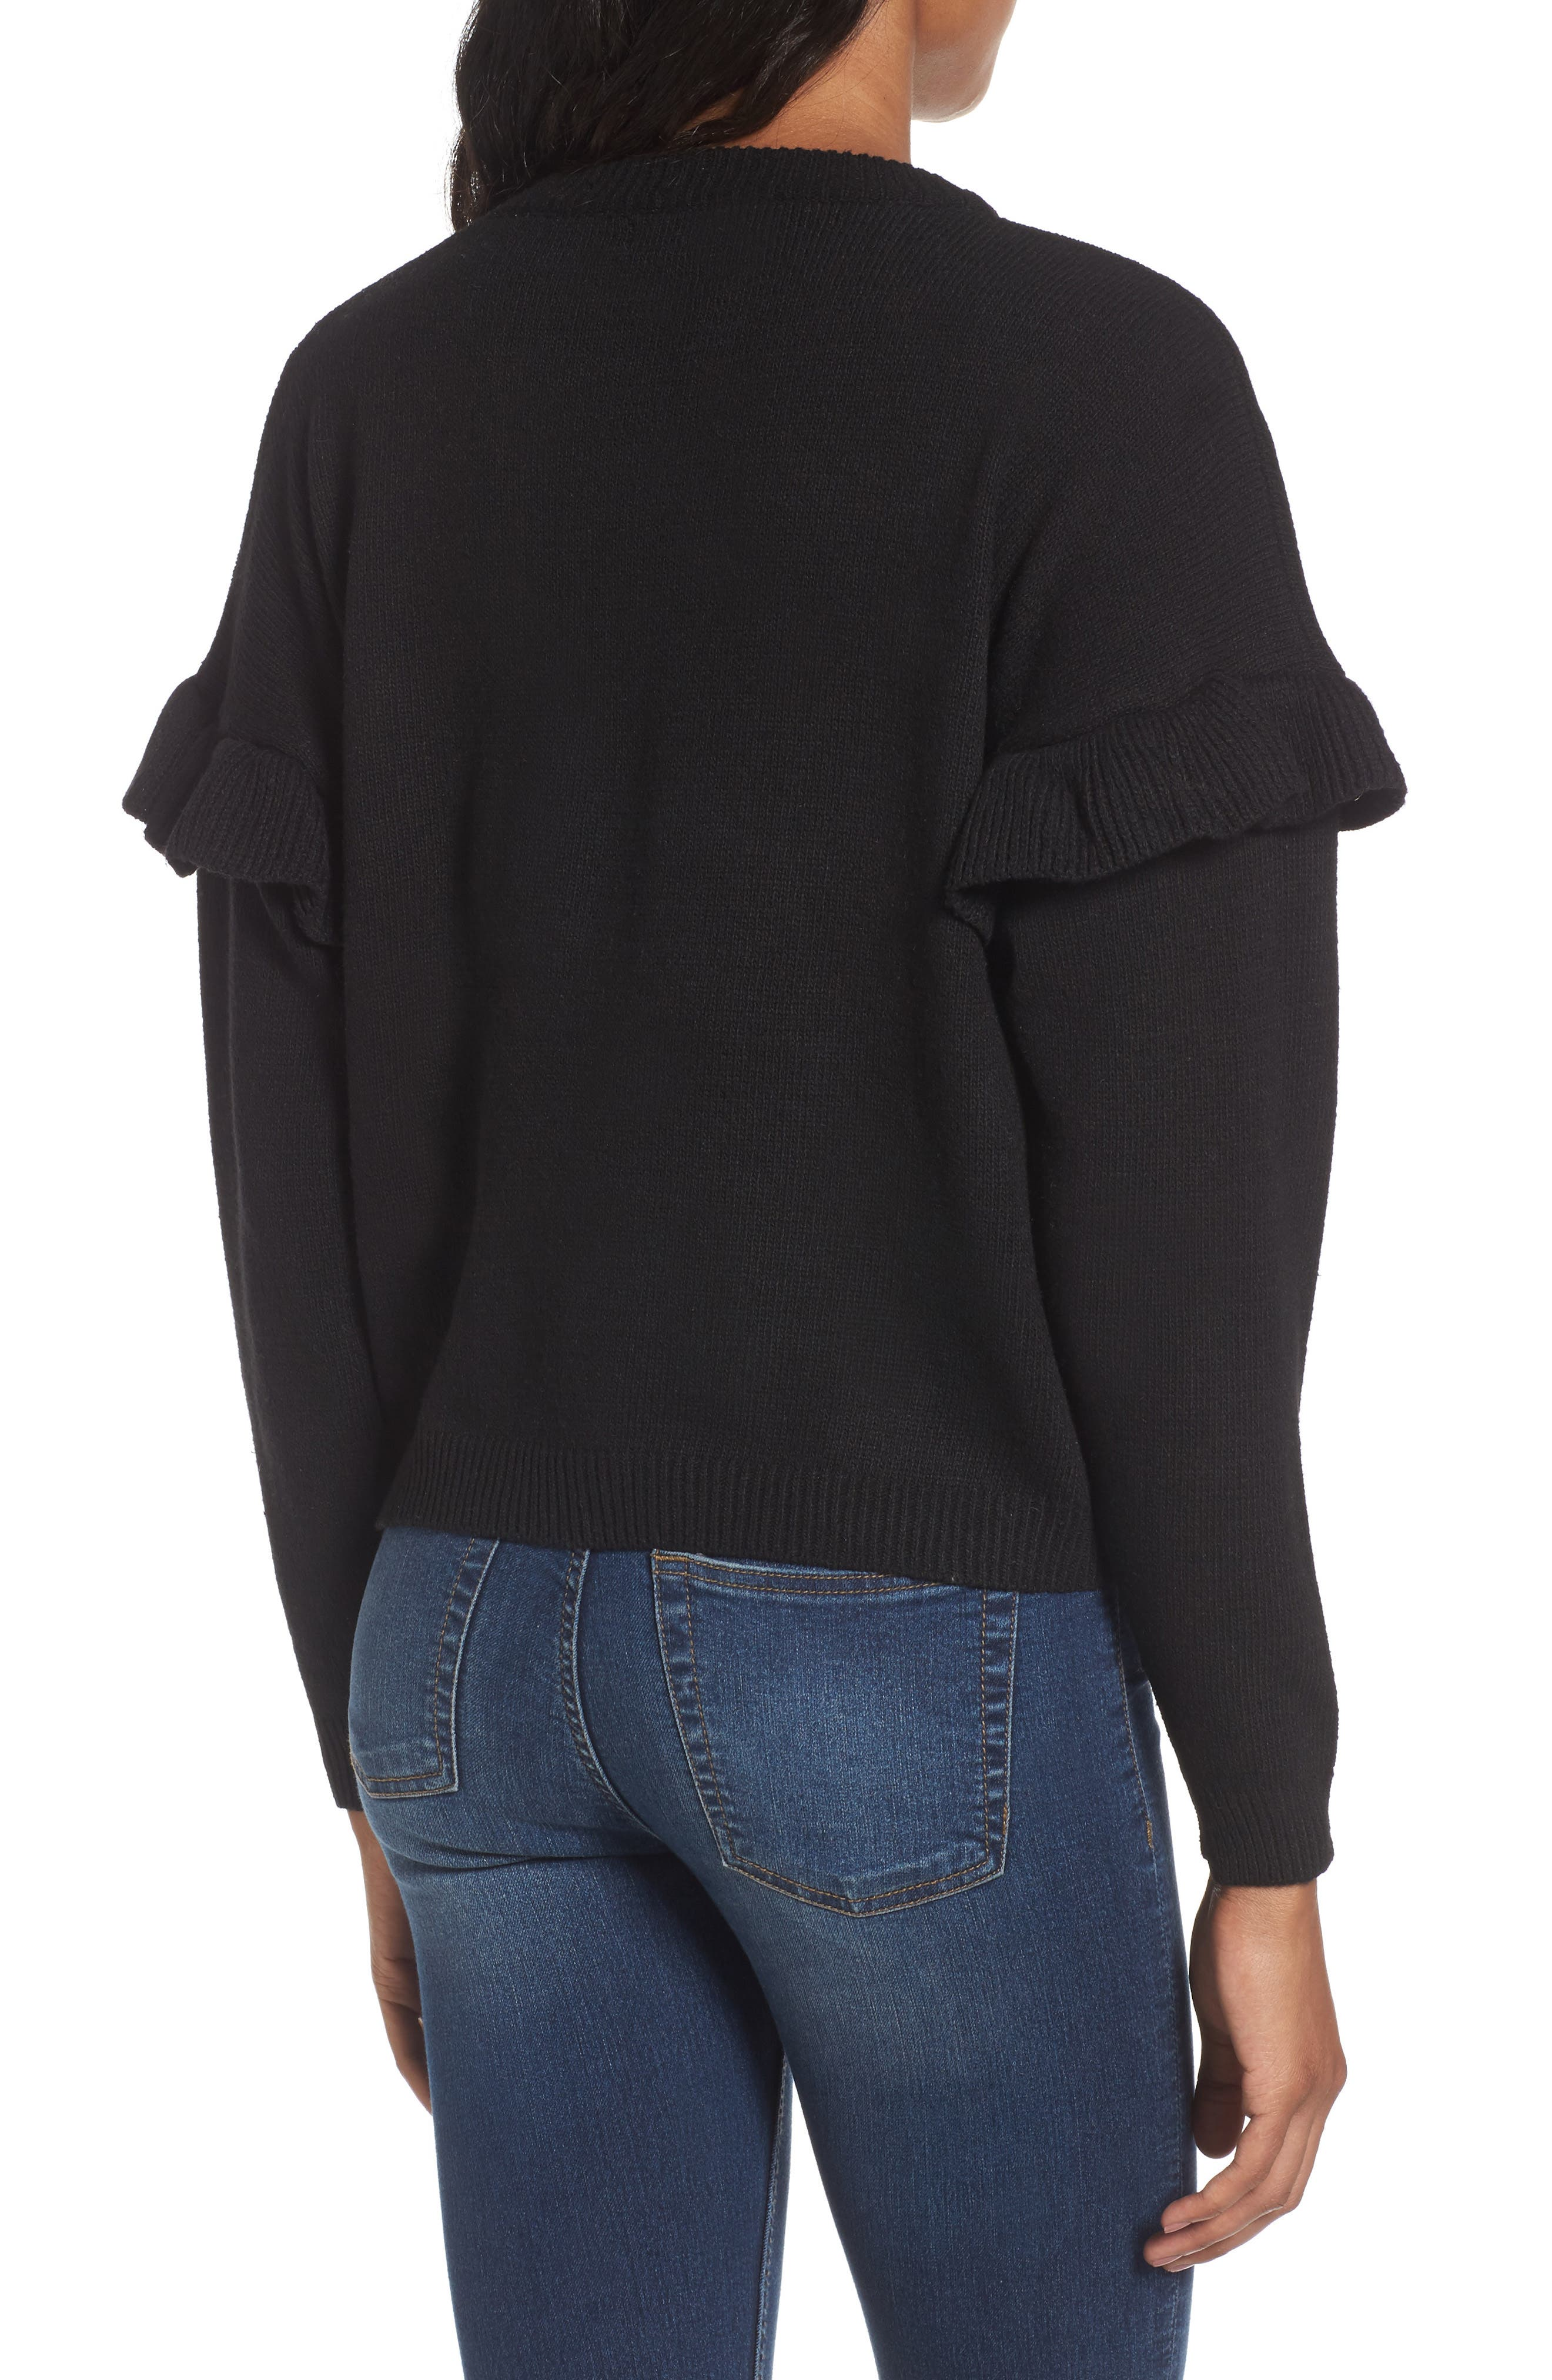 Ruffle Sleeve Embroidered Sweater,                             Alternate thumbnail 2, color,                             001